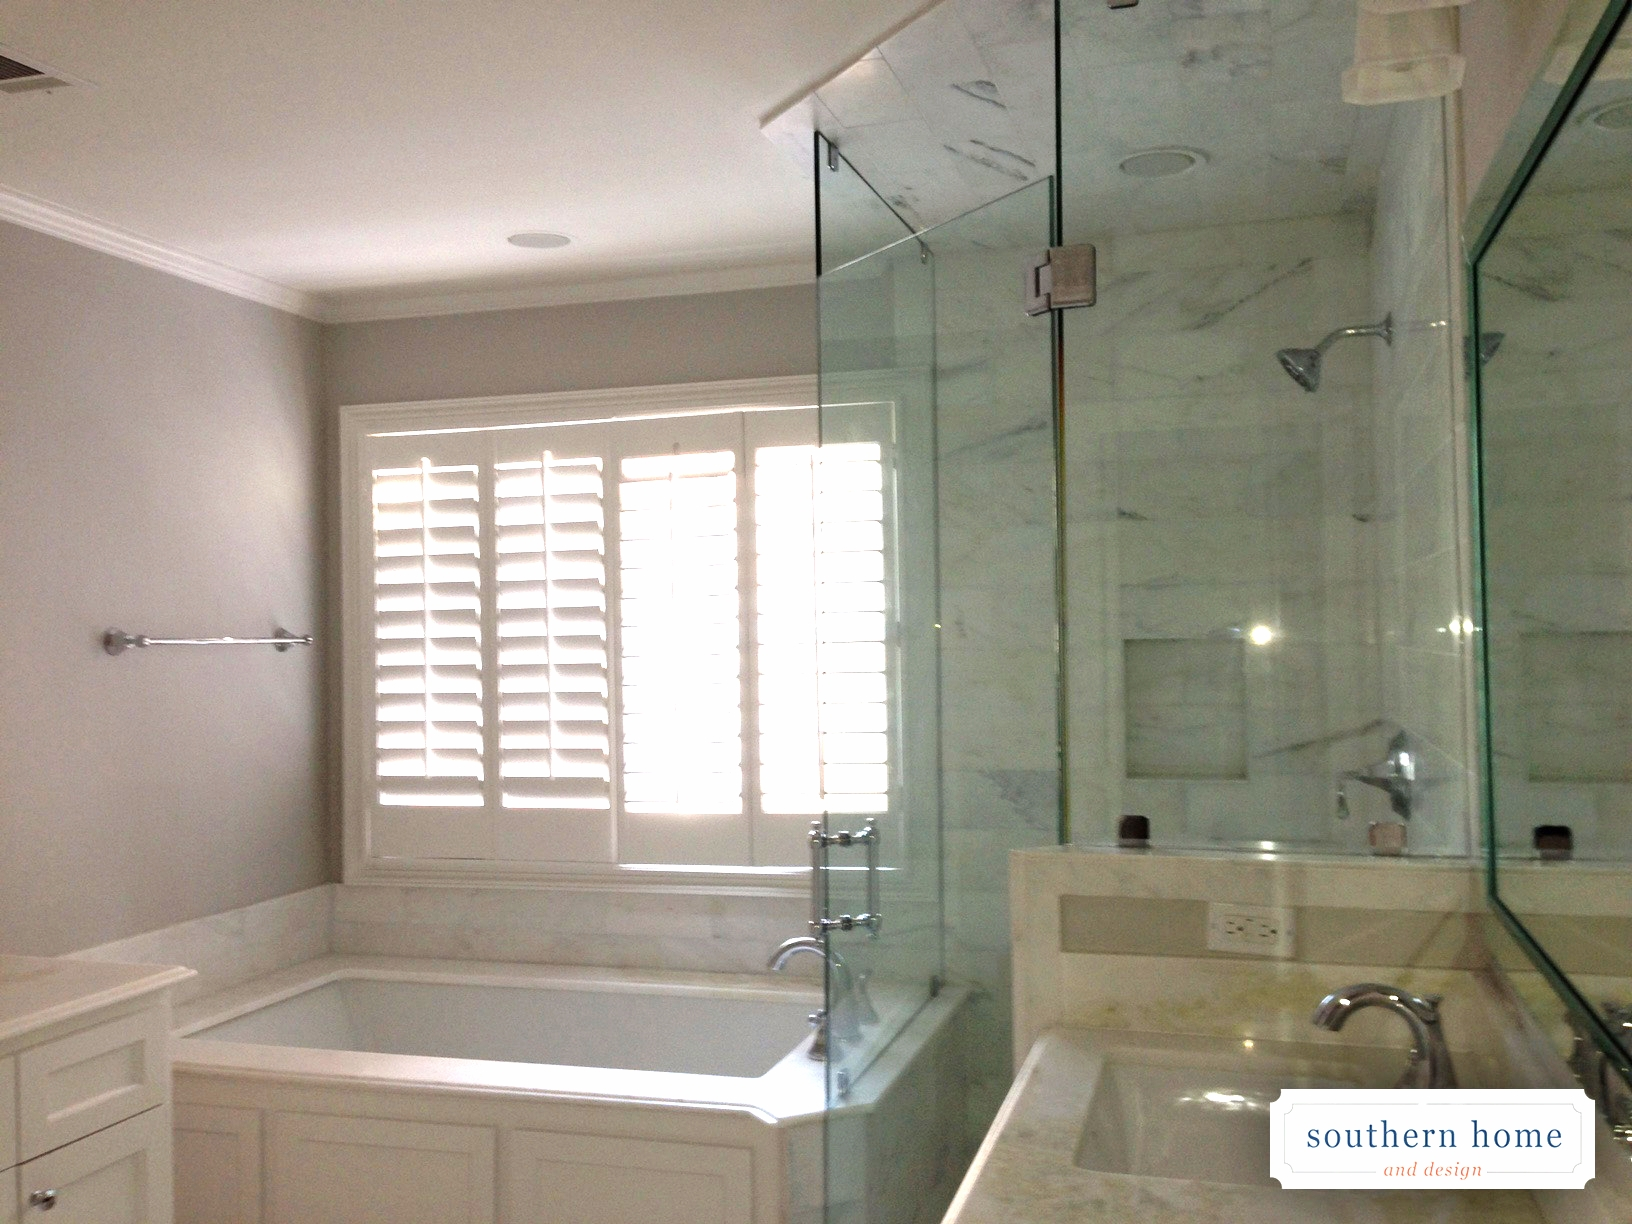 Clean, modern bathroom design in Dallas. Enclosed glass shower, shutters, and white tub.